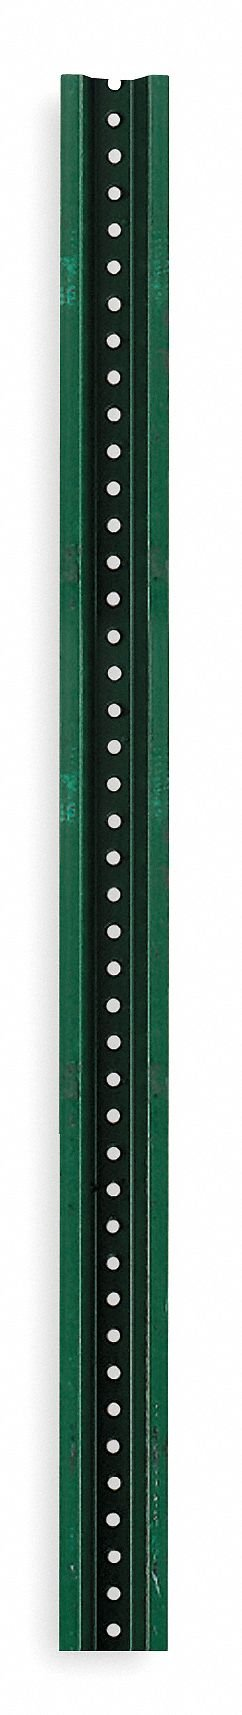 Tapco 054-00006 Steel U-Channel Sign Post, 12' Length, Green